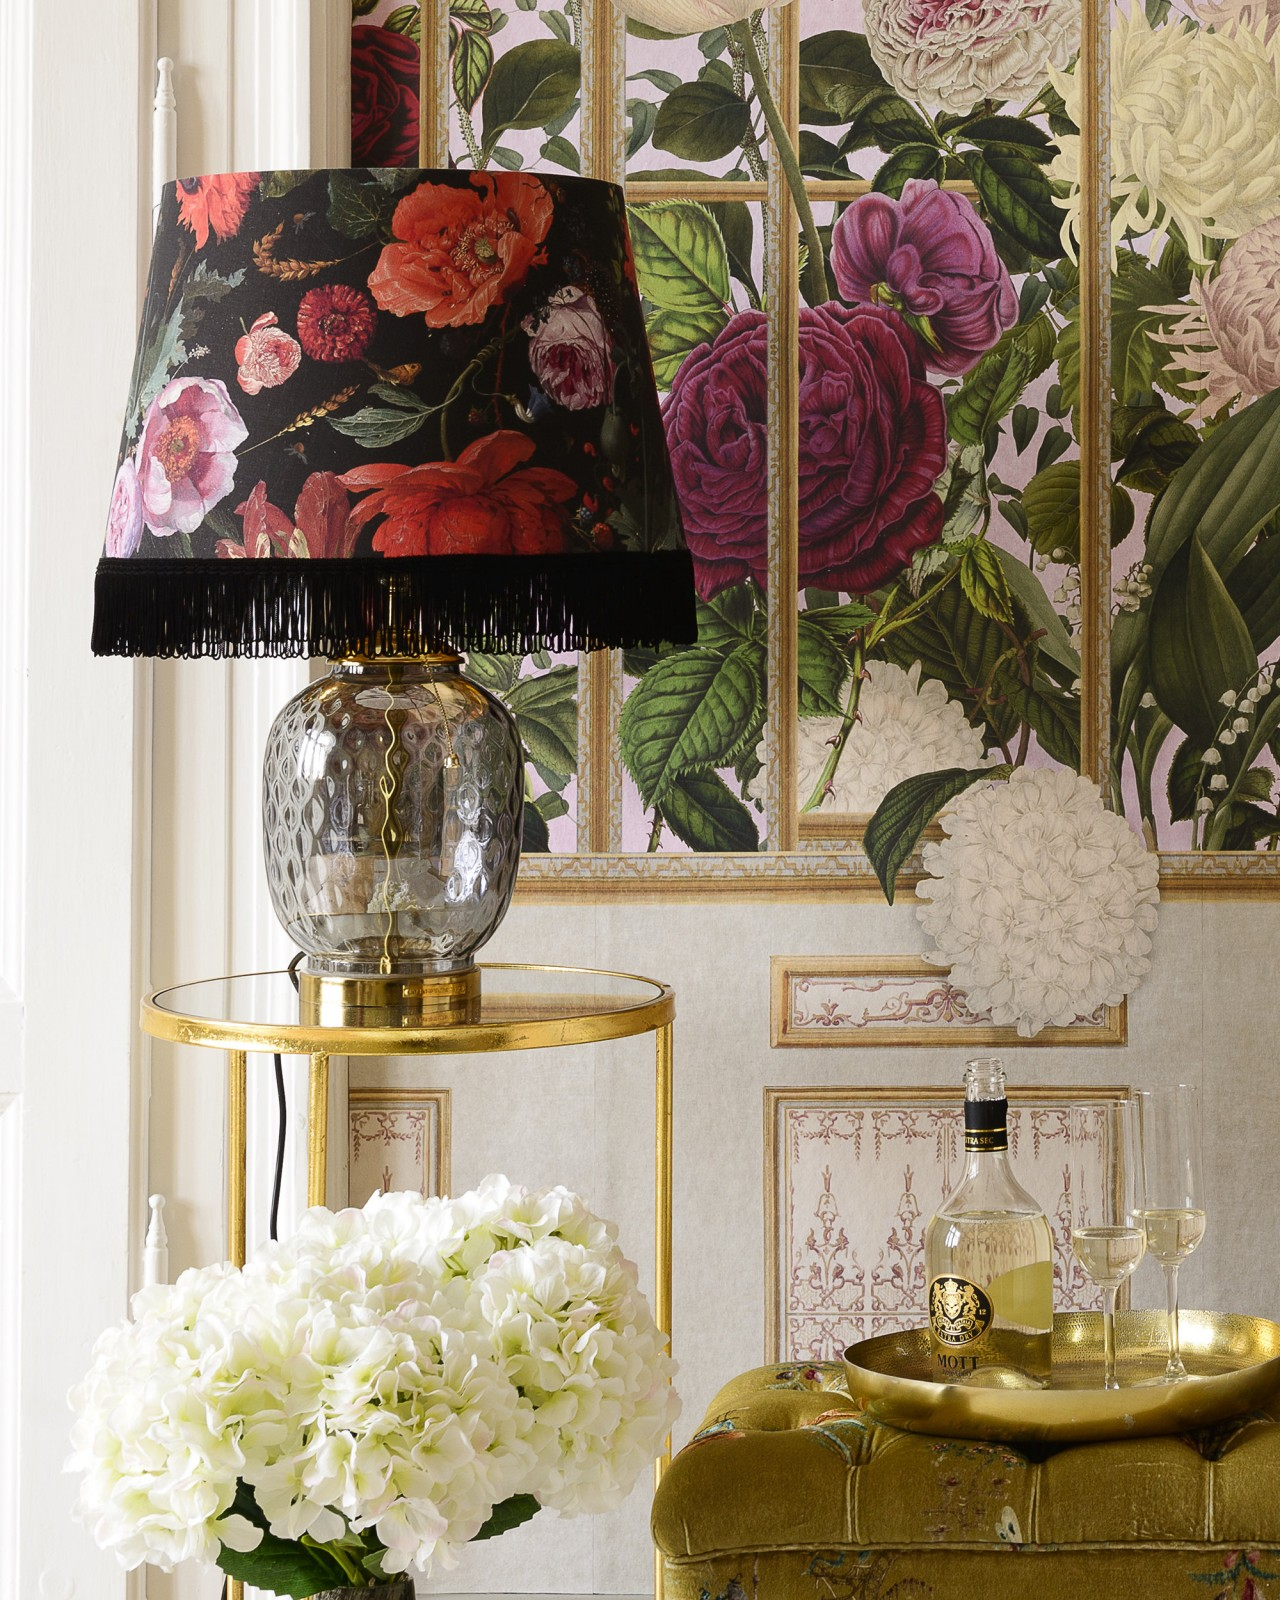 FLOWERS OF THE LADY Lampshade